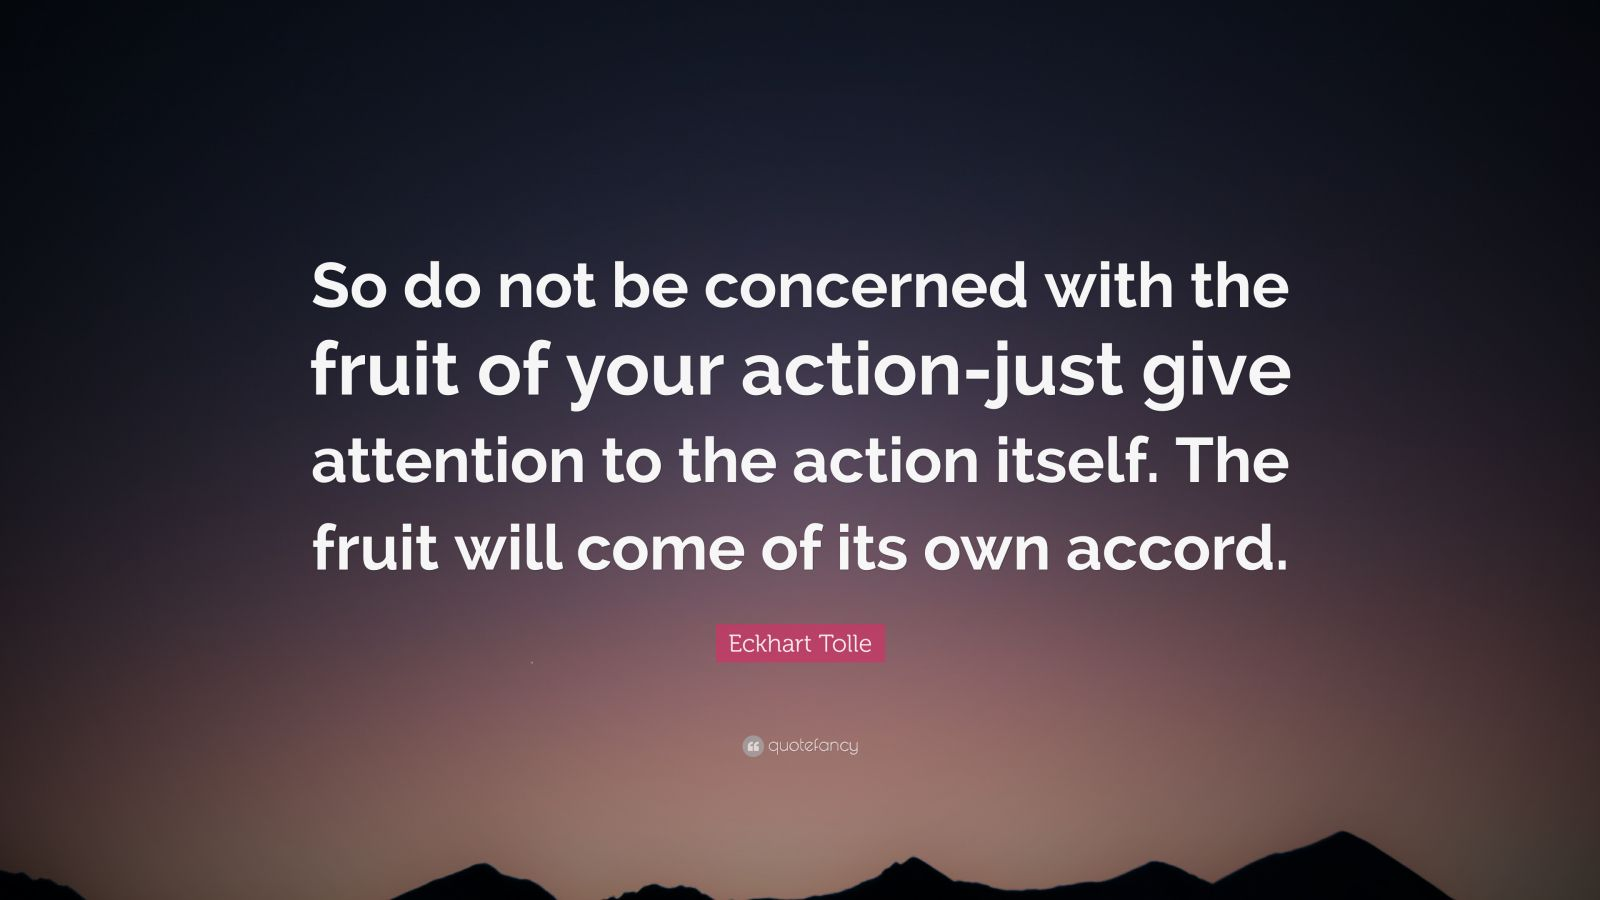 """Eckhart Tolle Quote: """"So do not be concerned with the fruit of your action-just give attention to the action itself. The fruit will come of its own accord."""""""